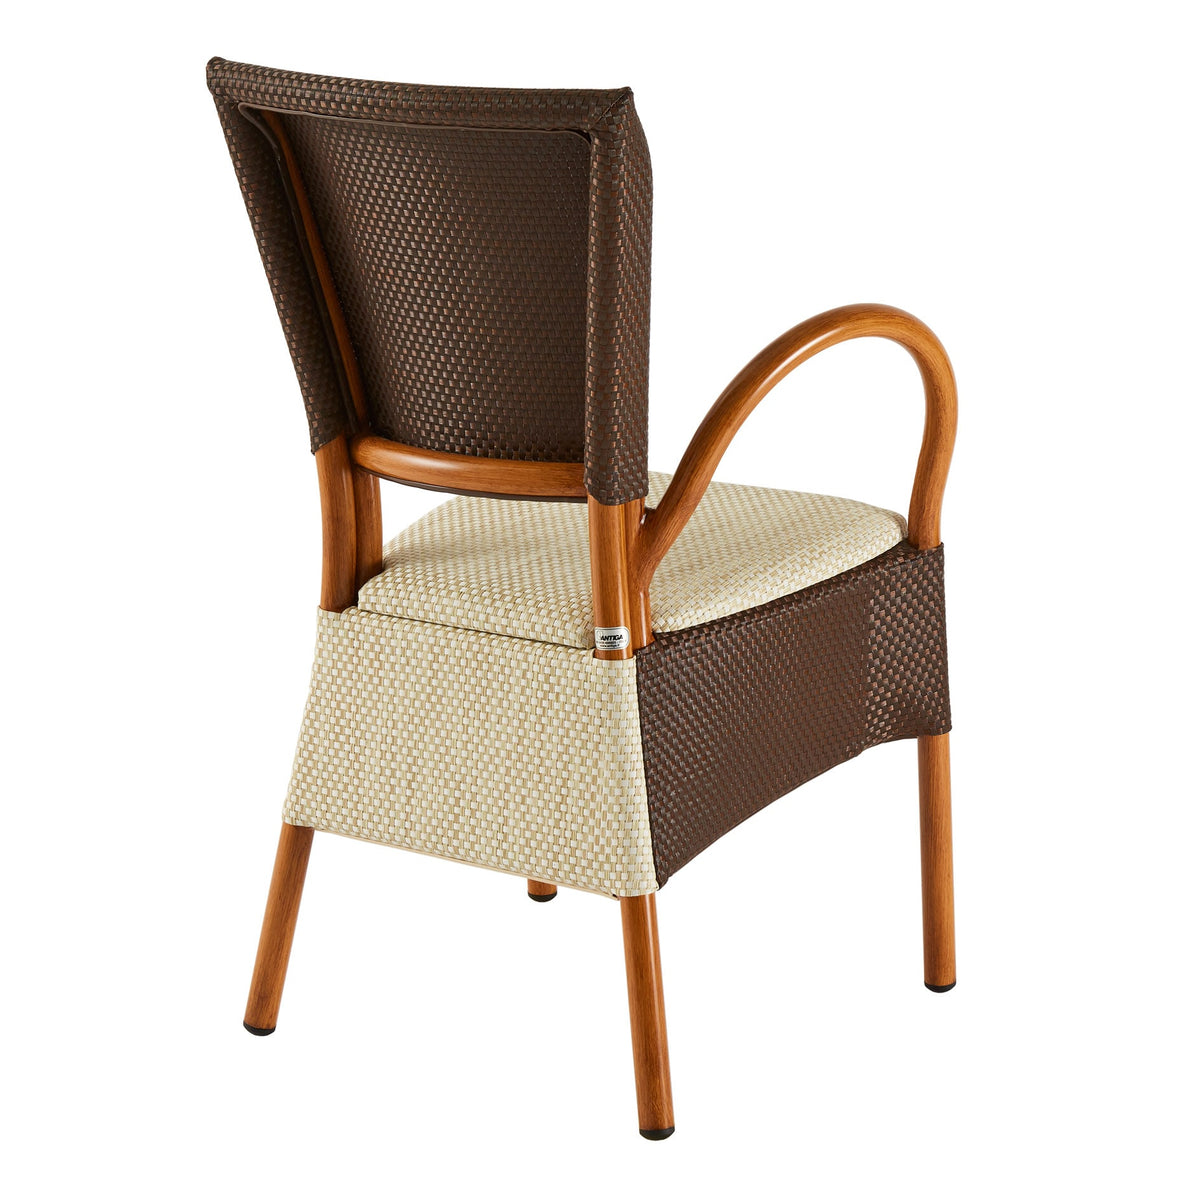 Mister Armchair-Antiga-Contract Furniture Store